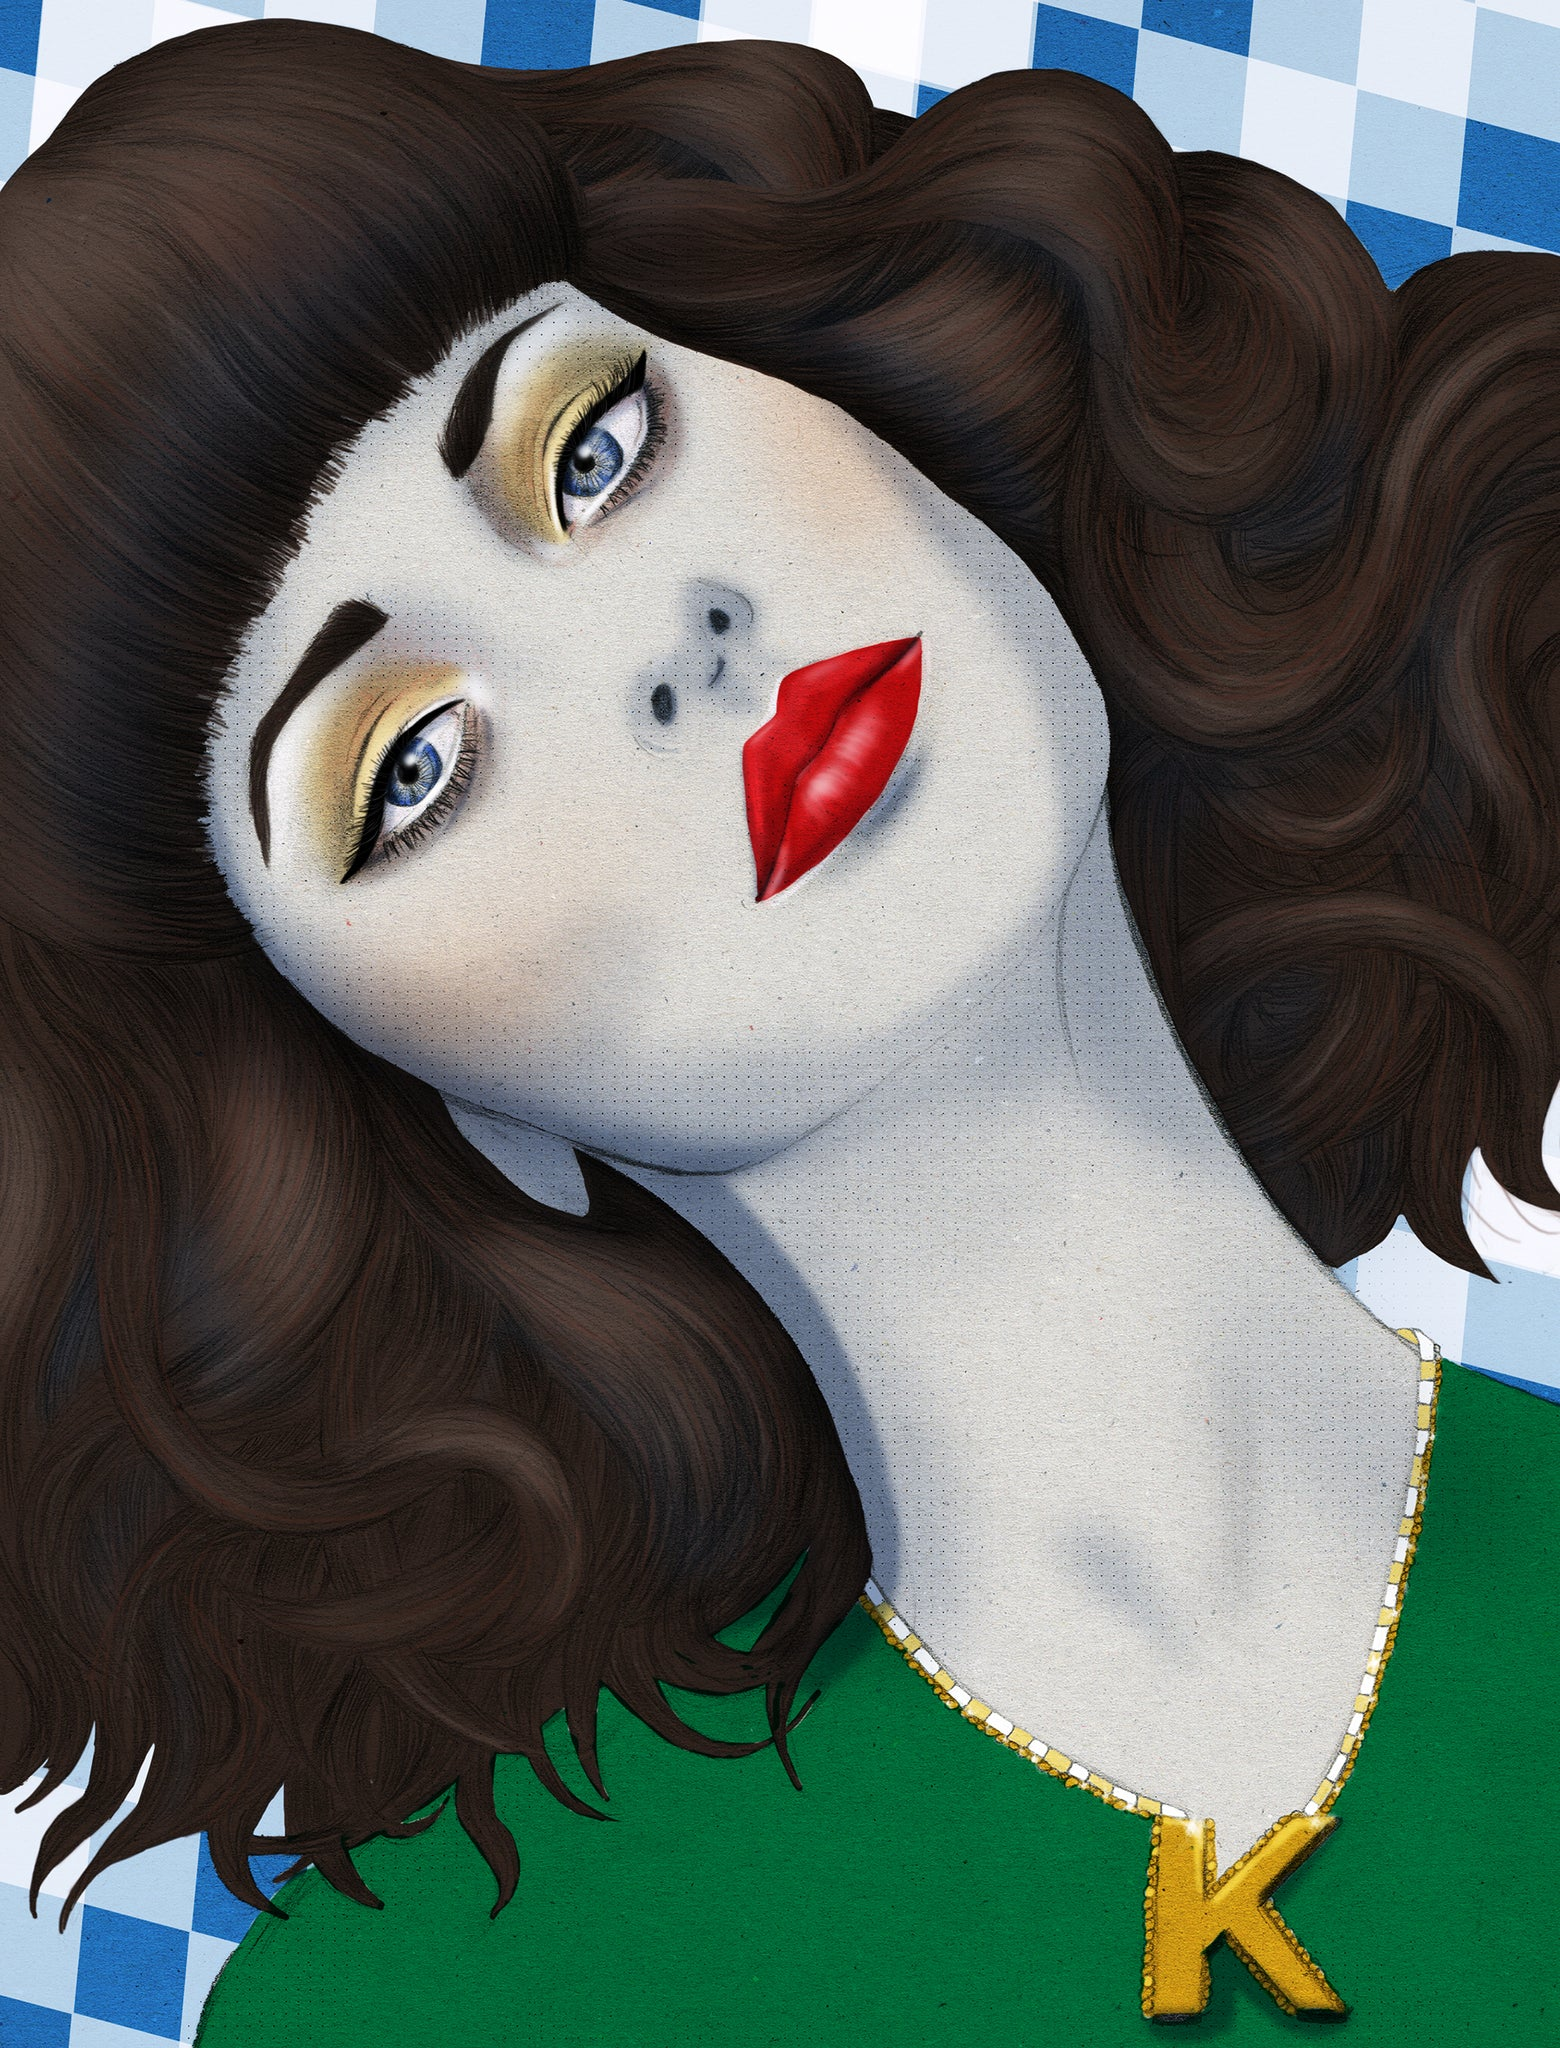 Kimbra portrait illustration by Melbourne based illustrator Kelly Thompson